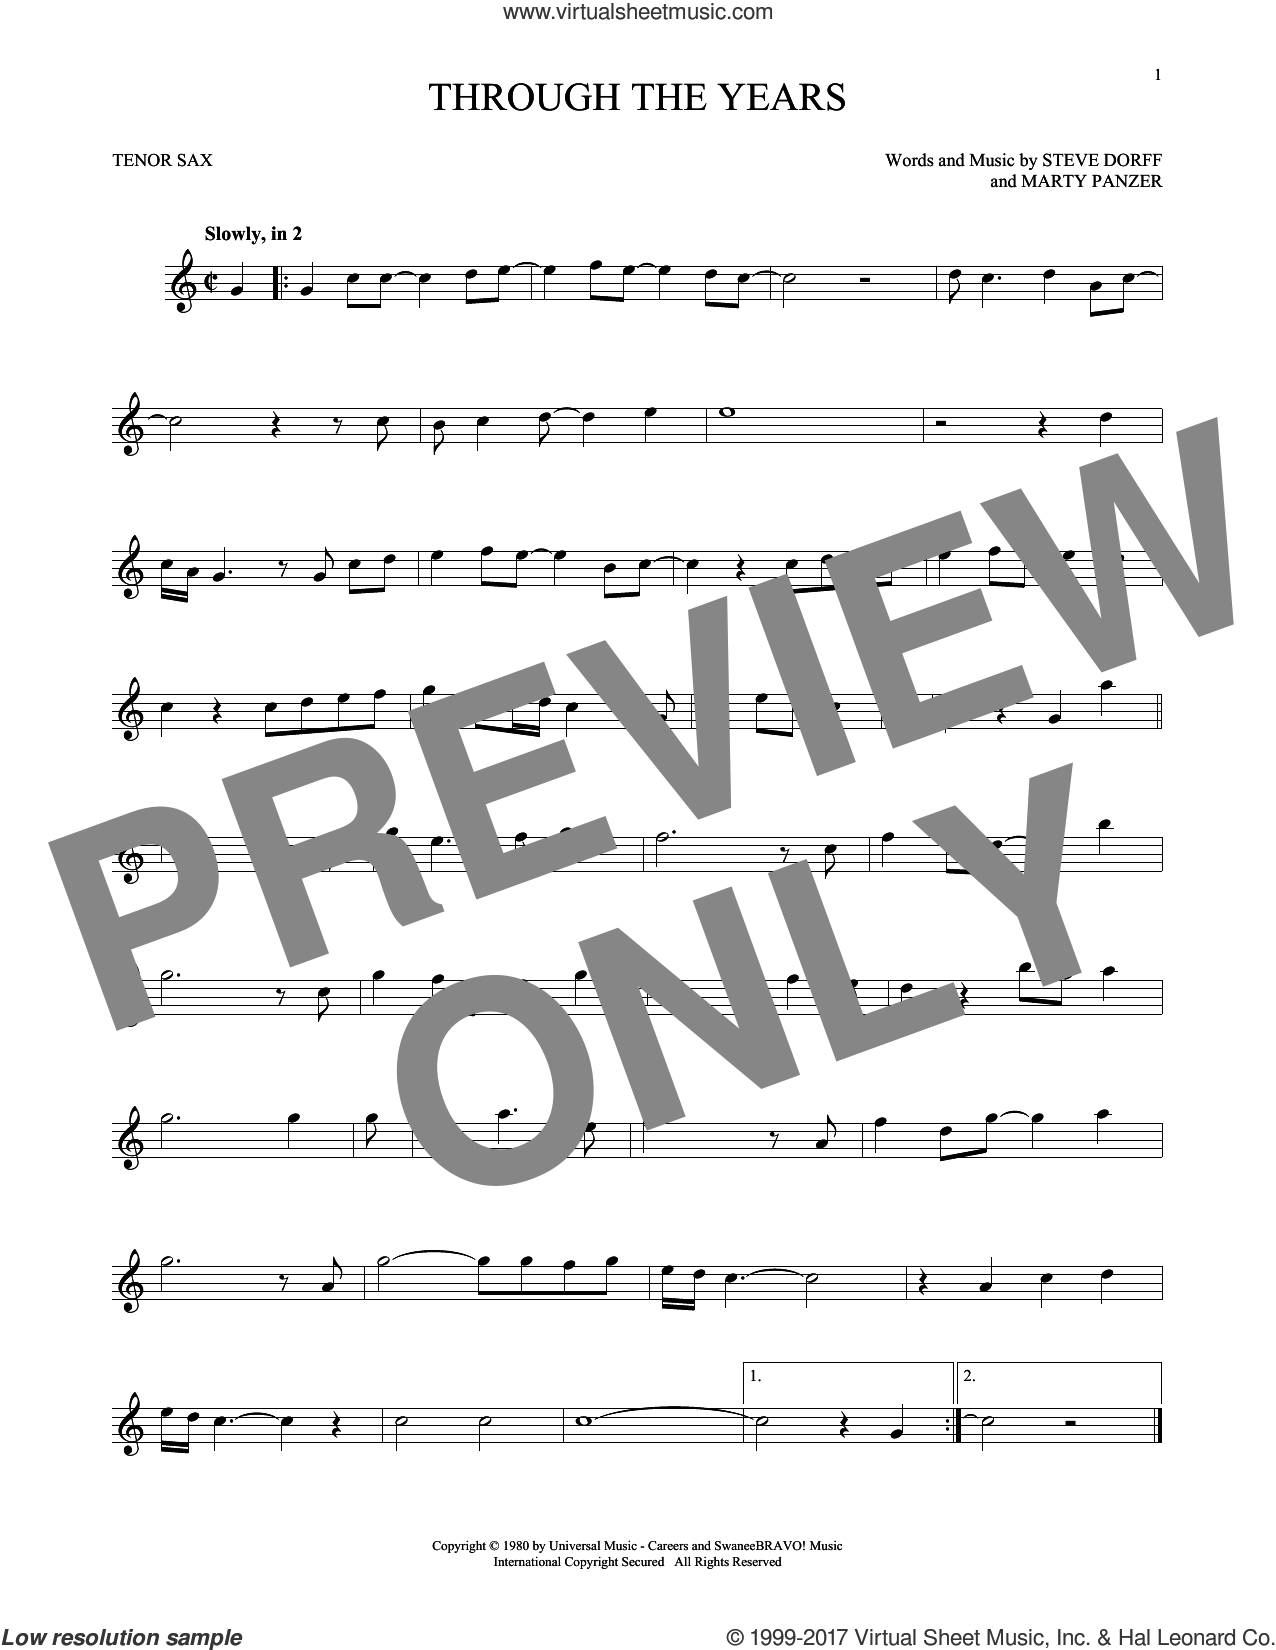 Through The Years sheet music for tenor saxophone solo by Kenny Rogers, Marty Panzer and Steve Dorff, intermediate skill level